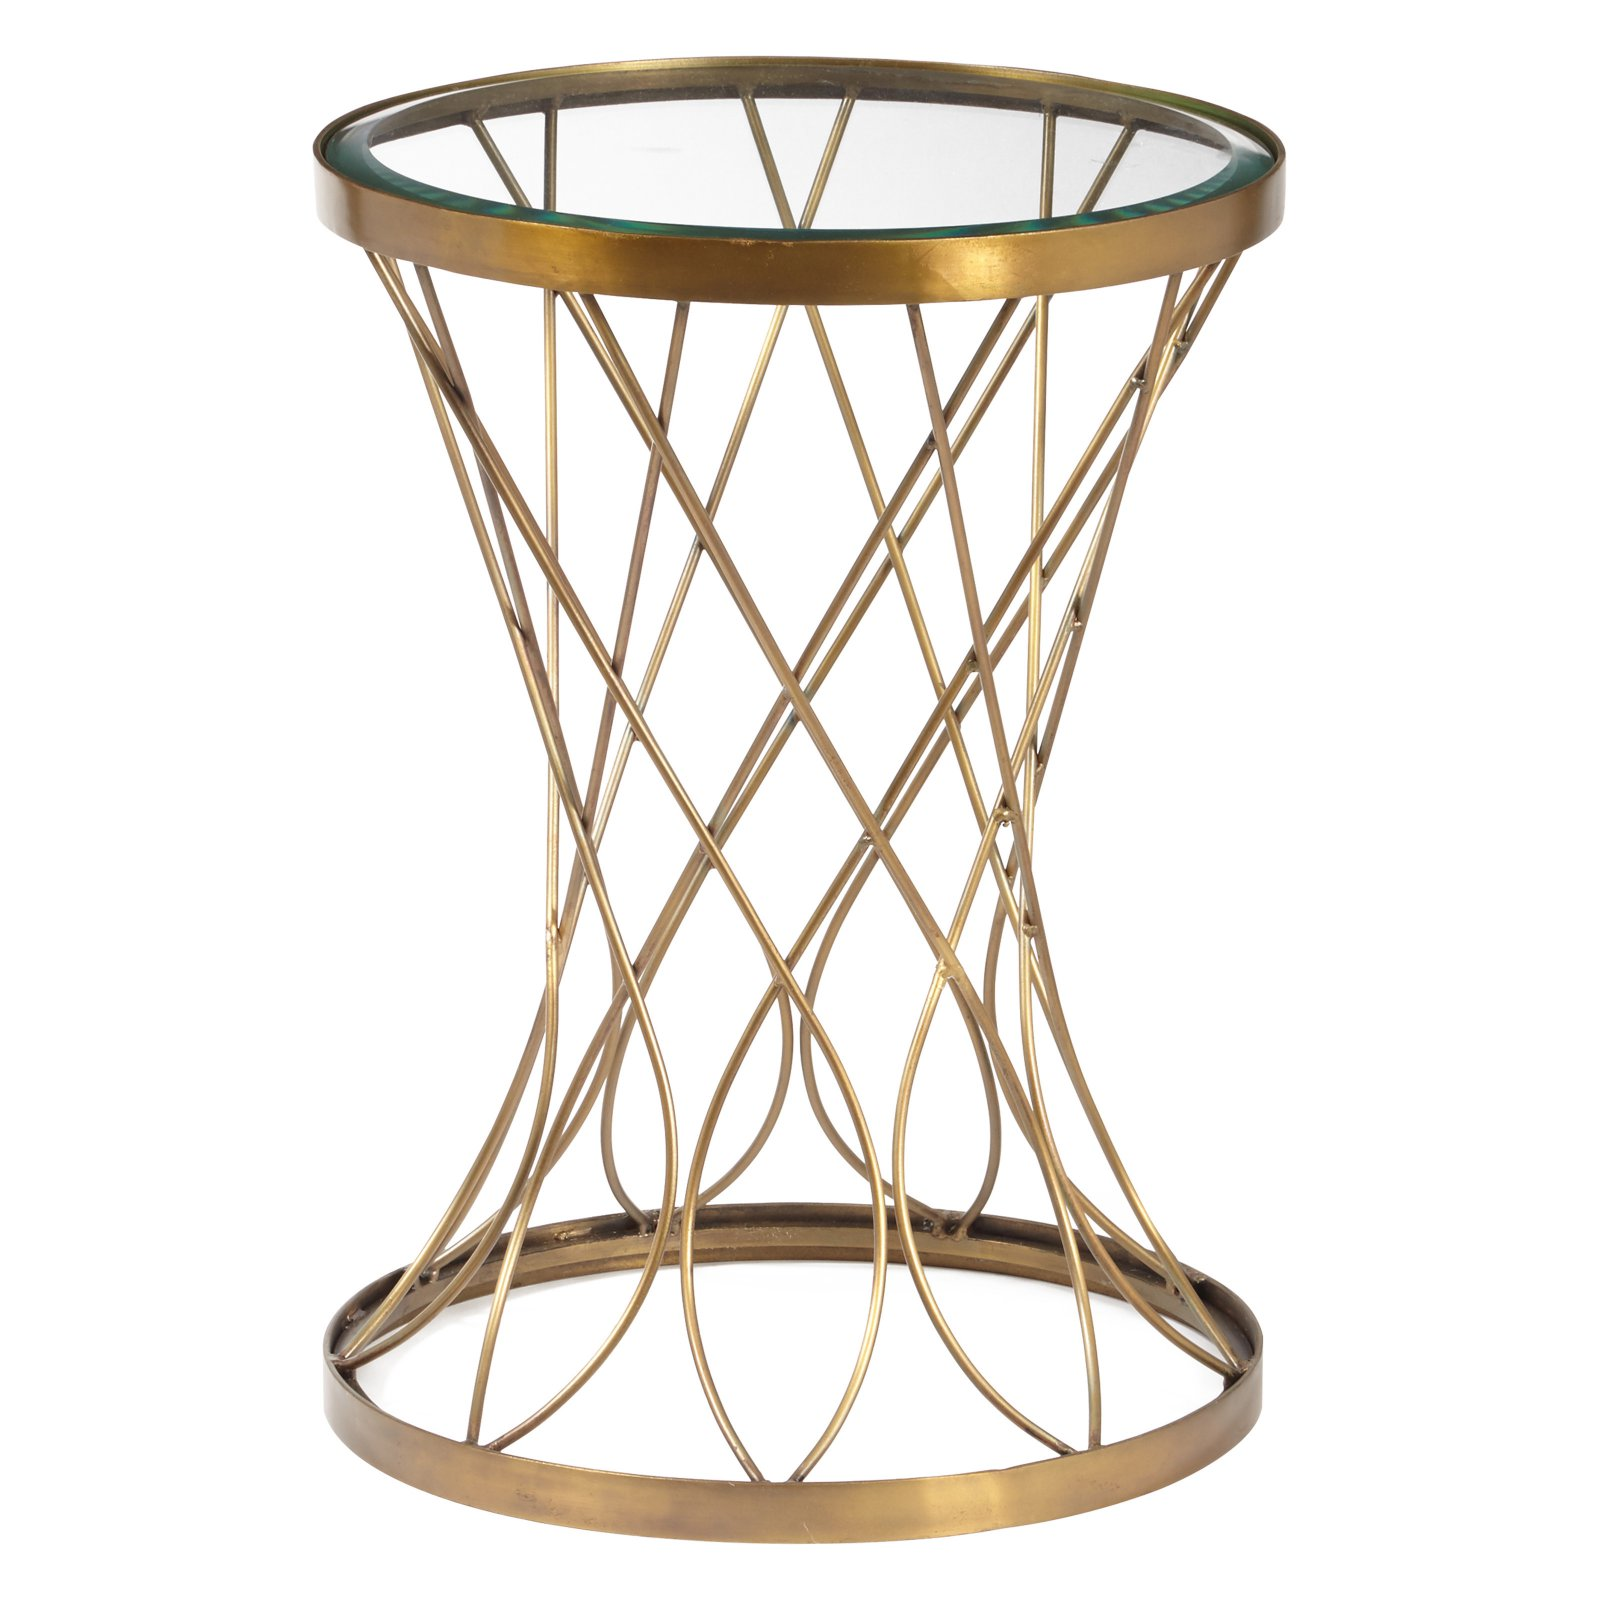 concave round brass metal accent table with glass top scale wisteria lamp entryway bench mirage mirrored elastic covers timber side outdoor furniture nautical childrens foyer